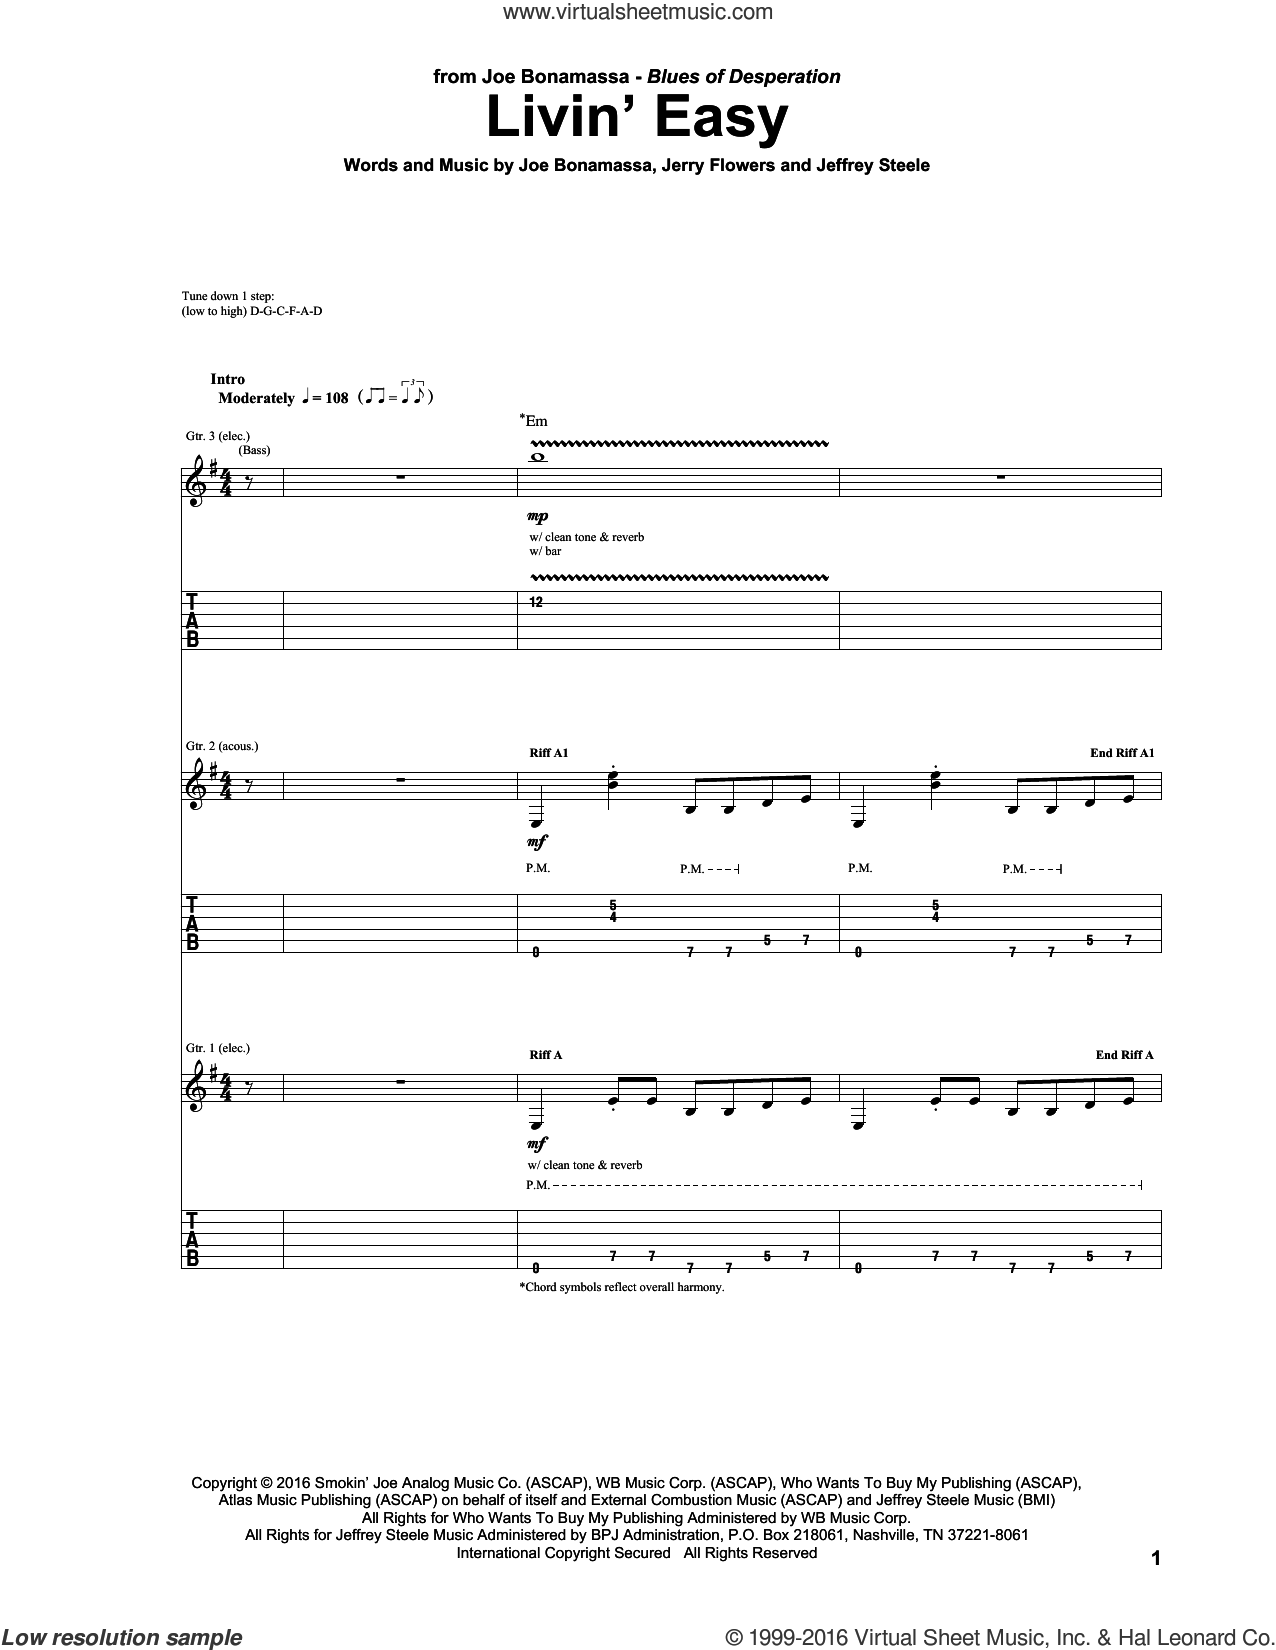 Livin' Easy sheet music for guitar (tablature) by Jerry Flowers, Jeffrey Steele and Joe Bonamassa. Score Image Preview.